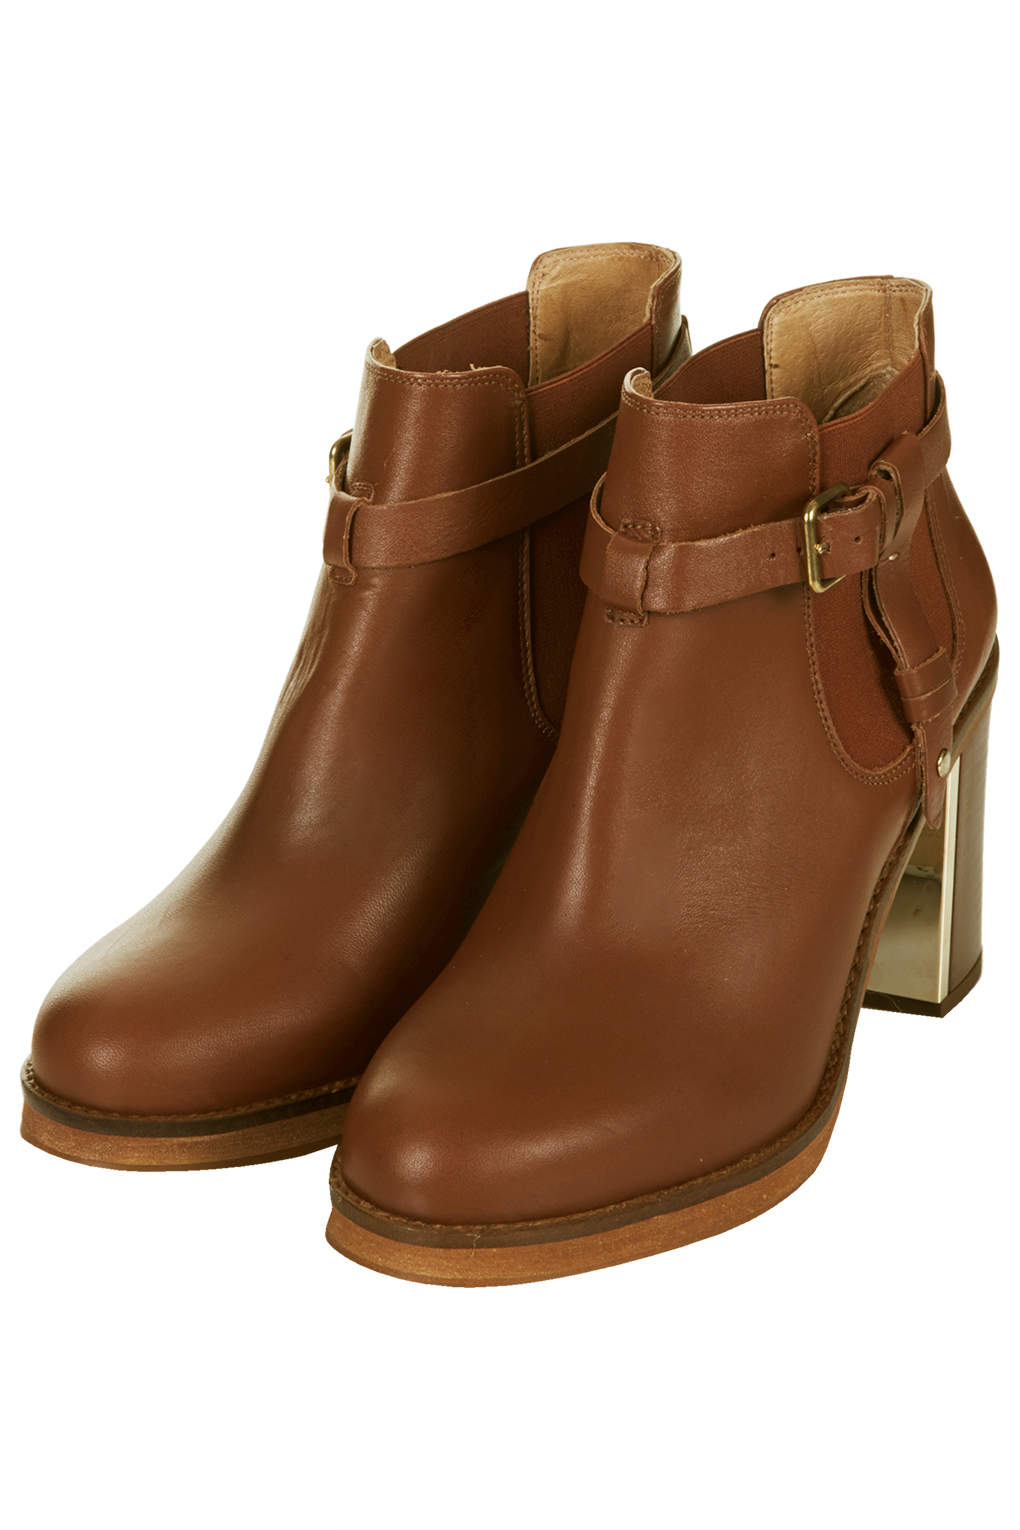 Topshop Womens Mine Leather Buckled Ankle Boots Tan in Brown | Lyst